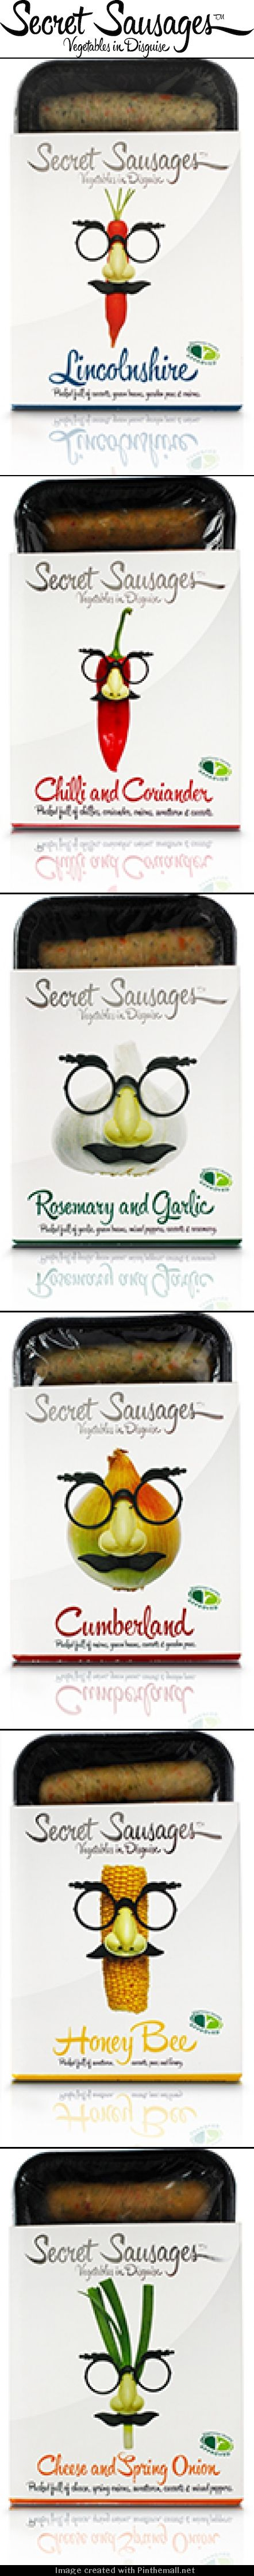 All the yummy Secret Sausages #packaging in one place curated by Packaging Diva PD via http://www.secret-sausages.com/